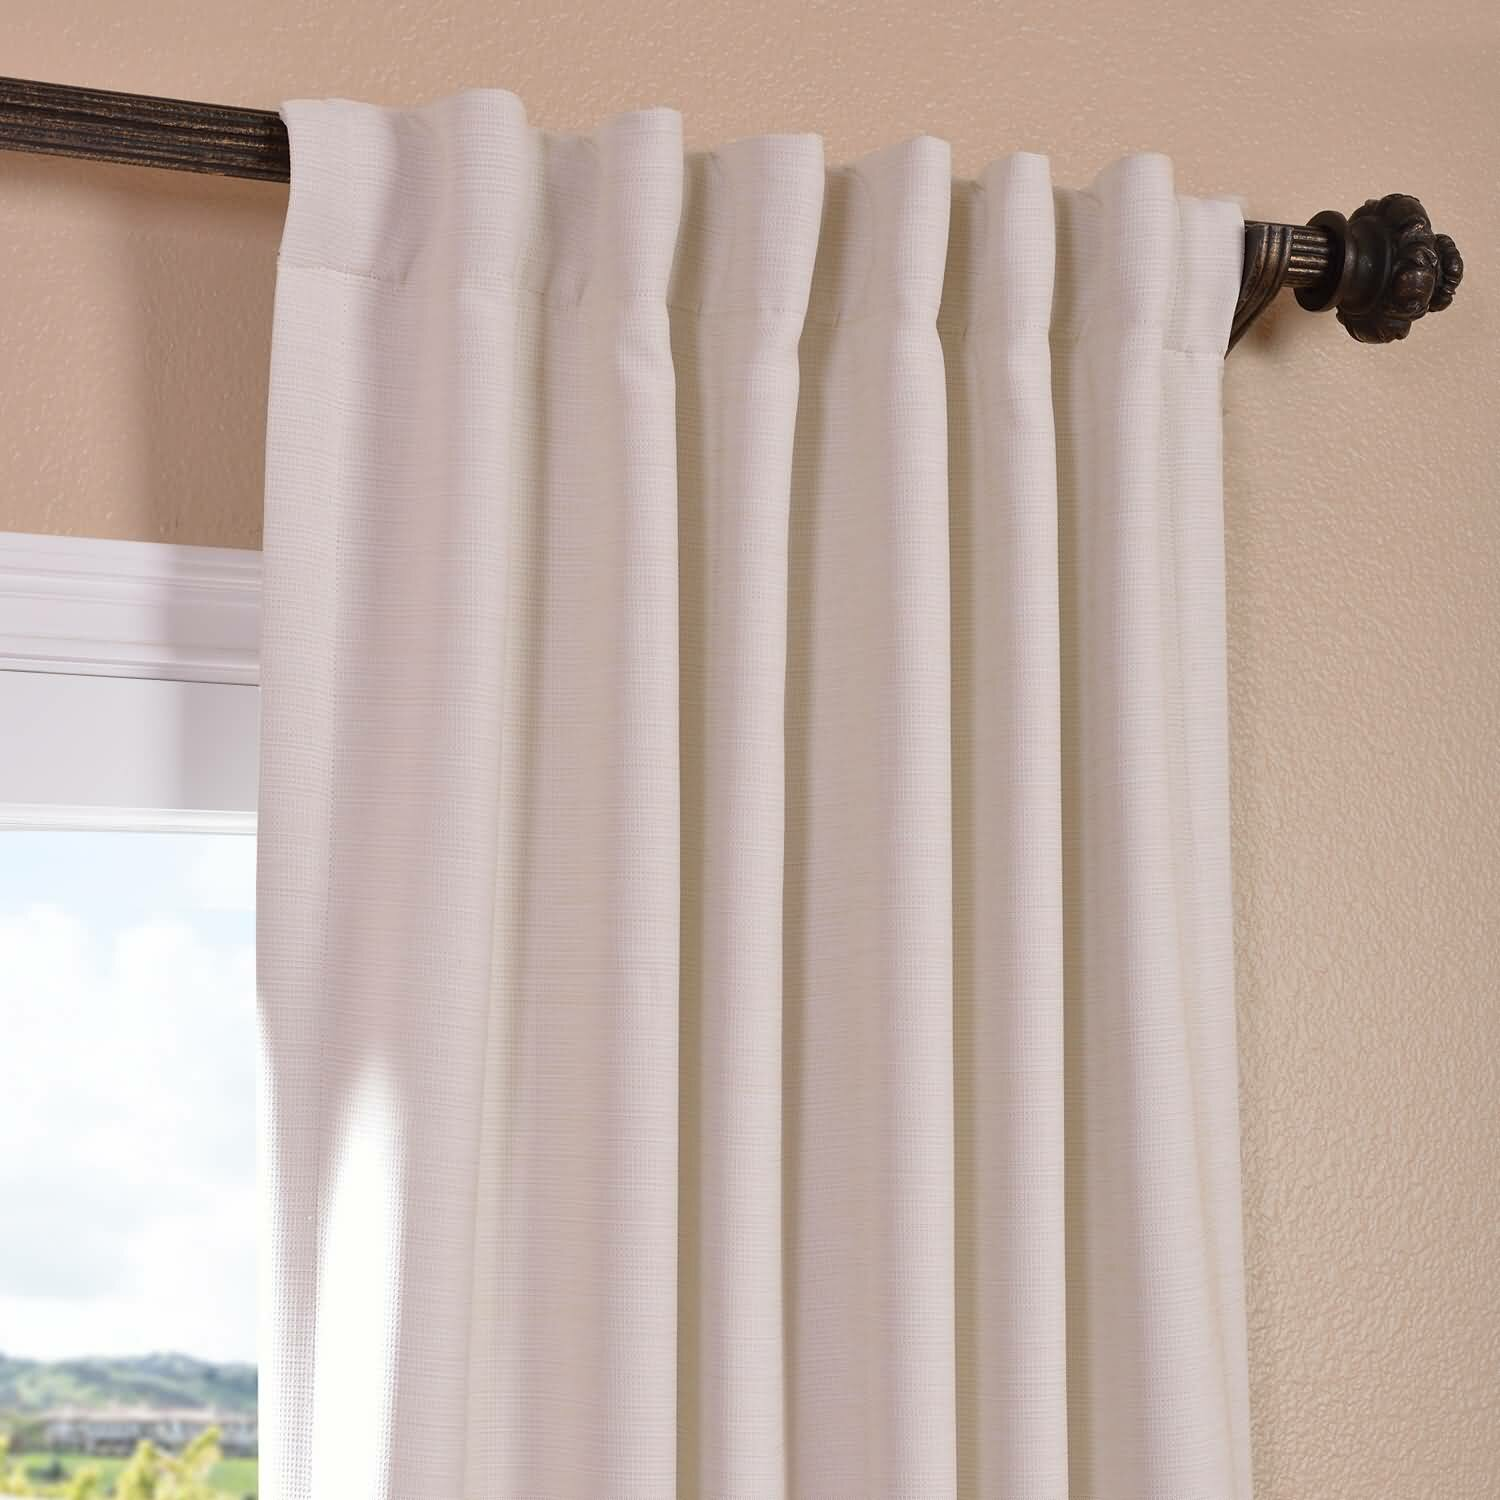 Freeman Solid Blackout Pinch Pleat Single Curtain Panel